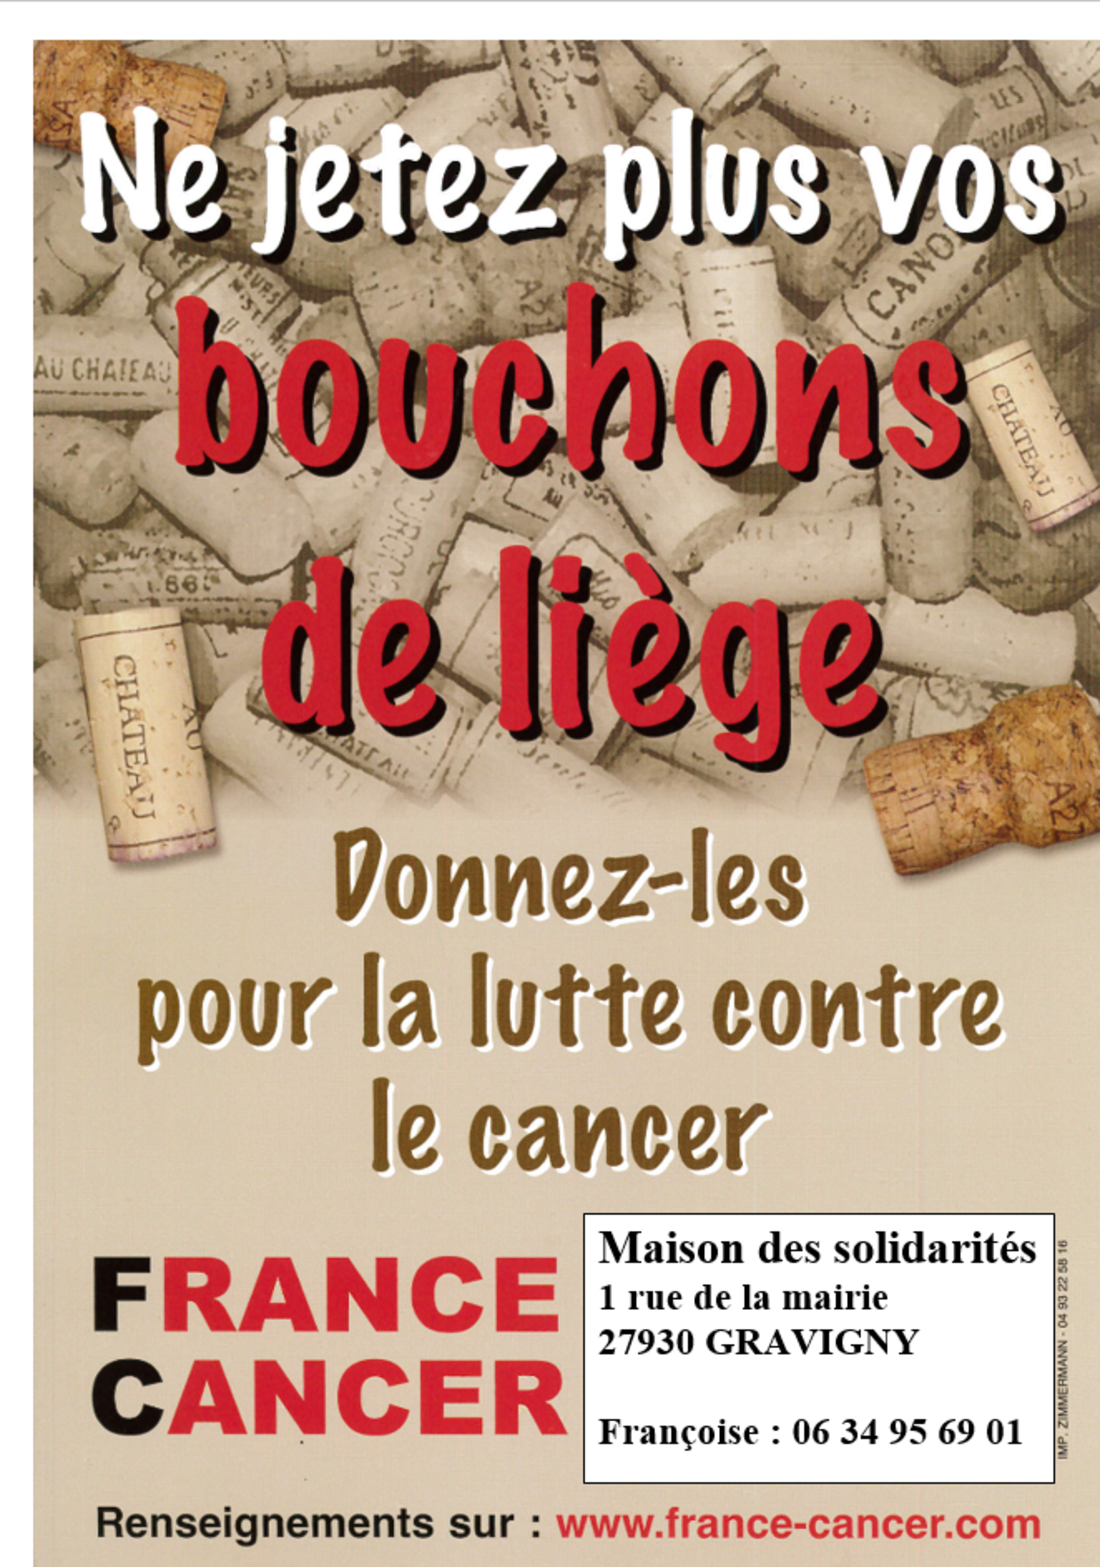 /system/attachments/351/large/bouchons_france_cancer_17-05-2018-png.PNG?1526541952